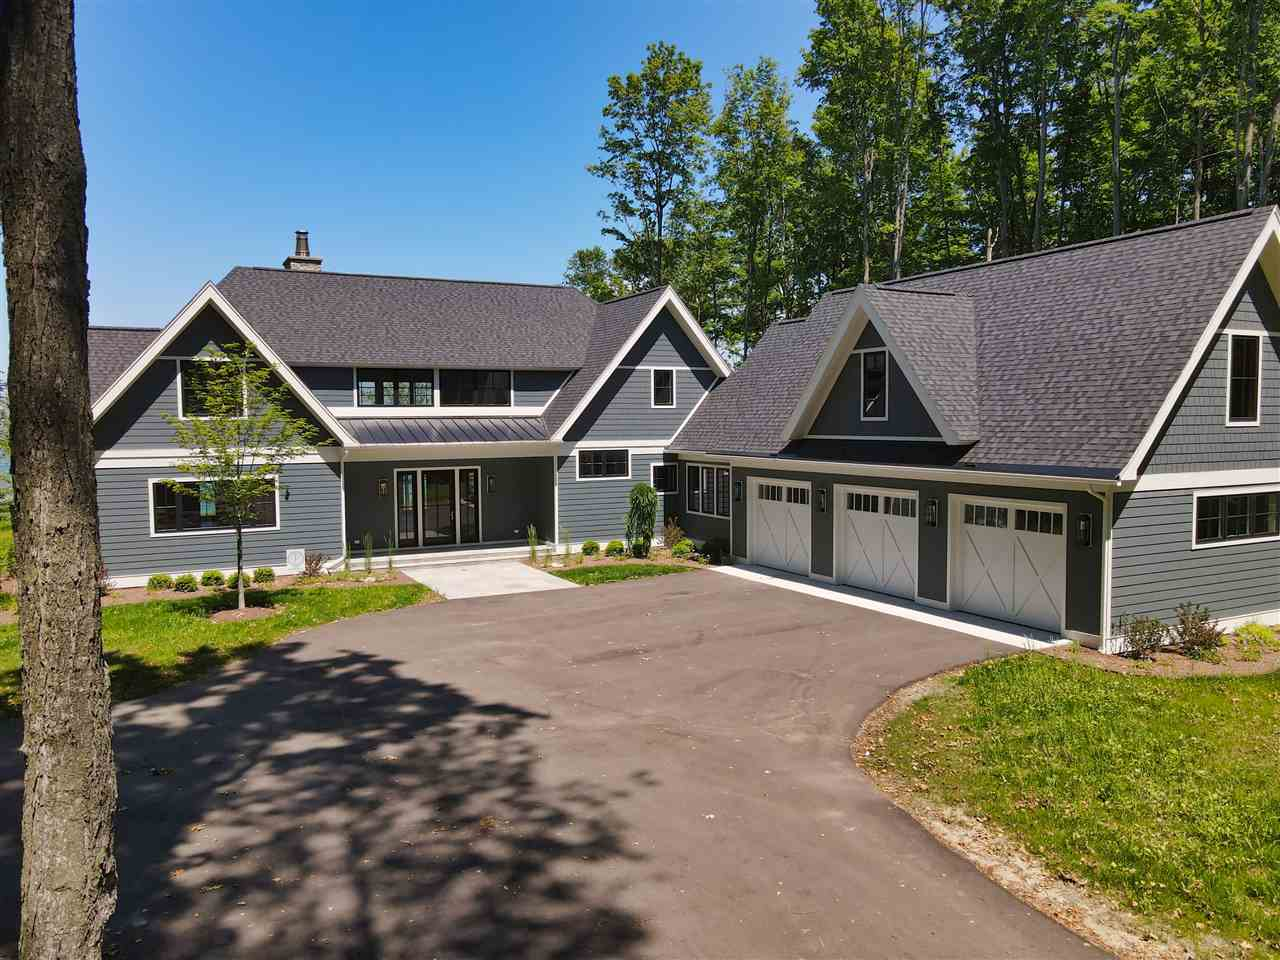 MLS 459139 - 7344  Preserve Drive North , Bay Harbor, MI